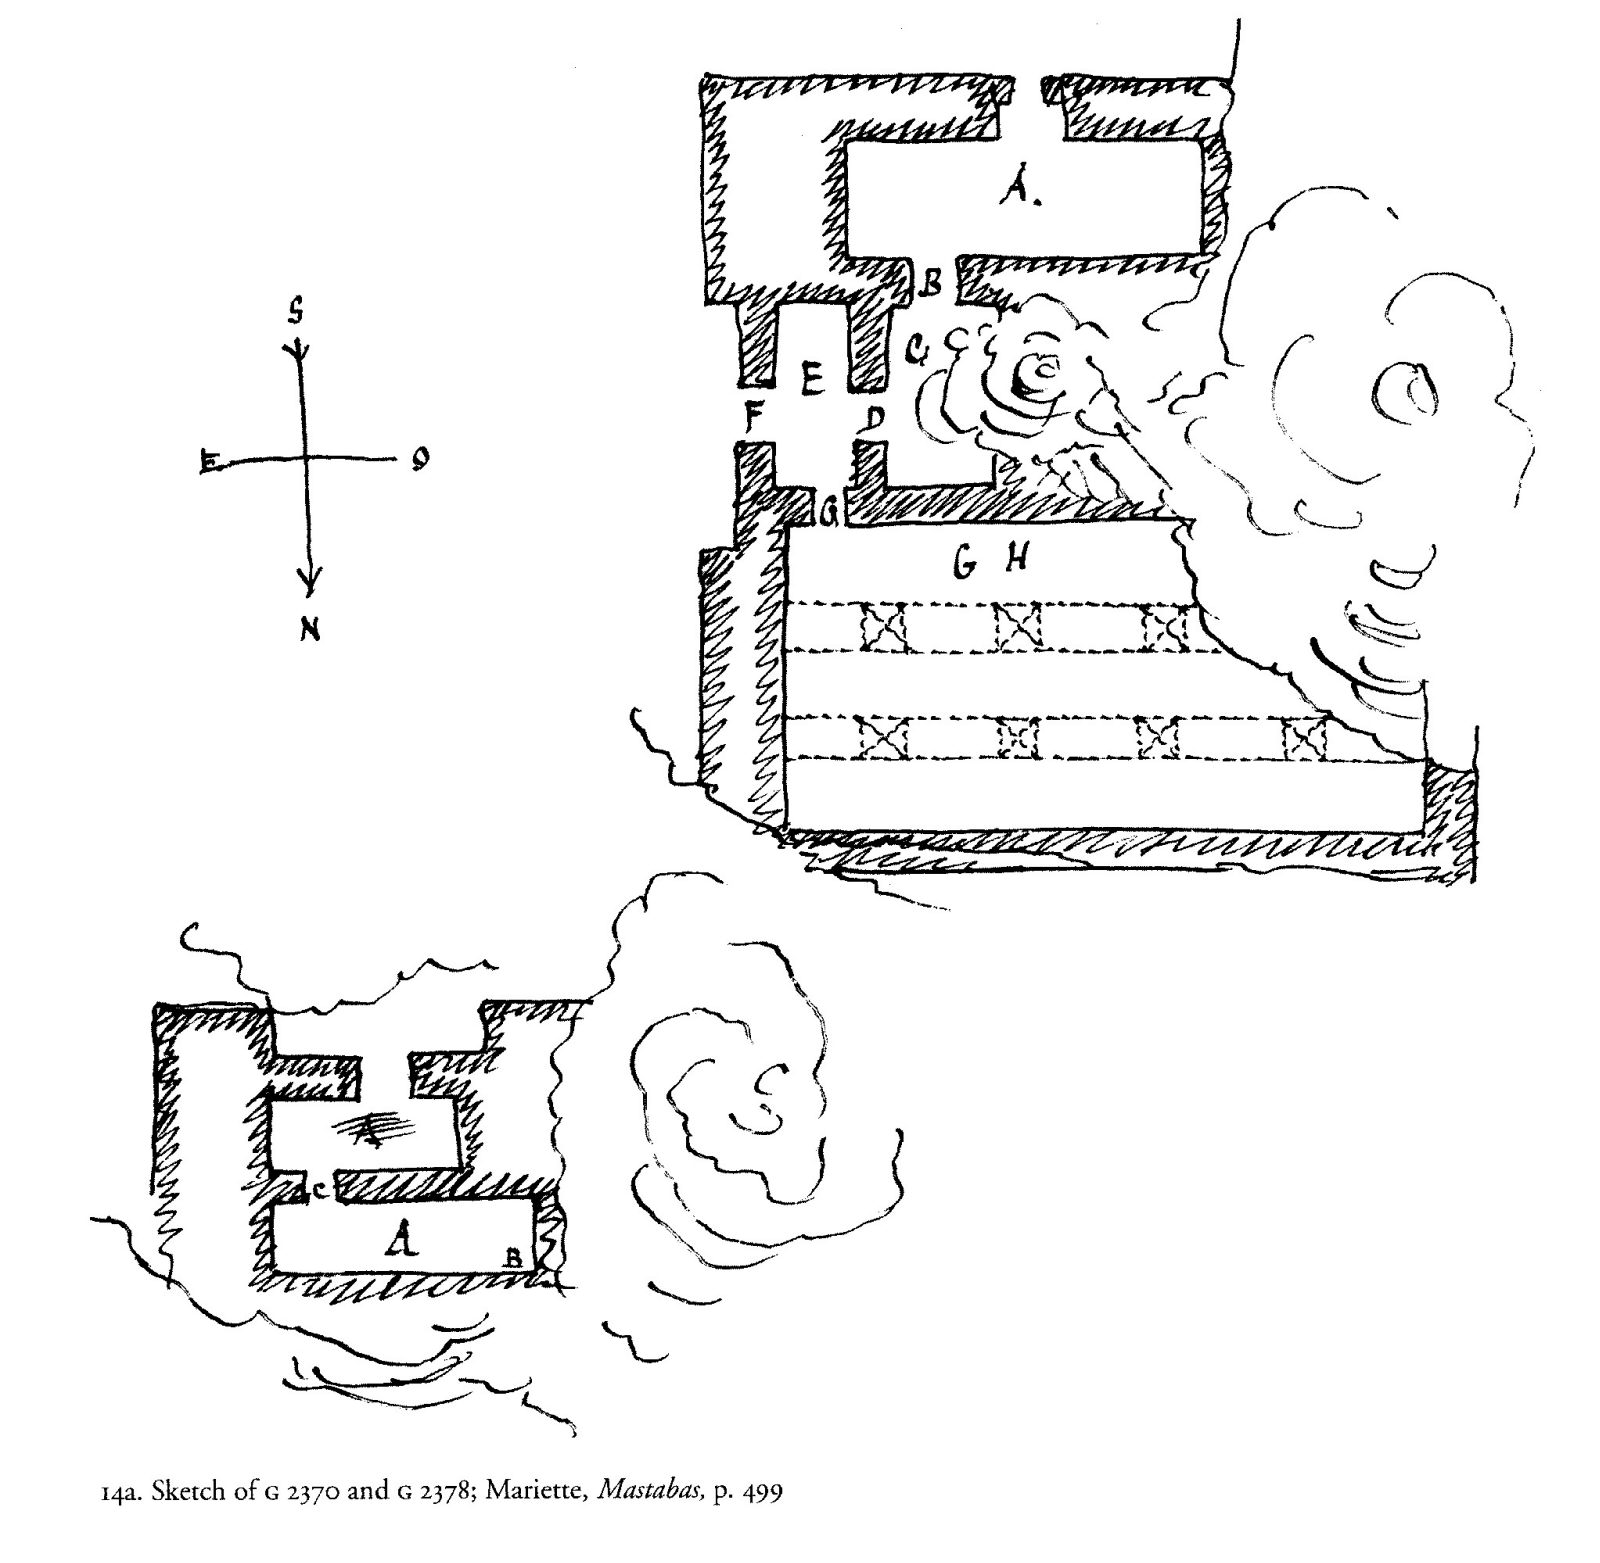 Maps and plans: Plans of G 2370 and G 2378